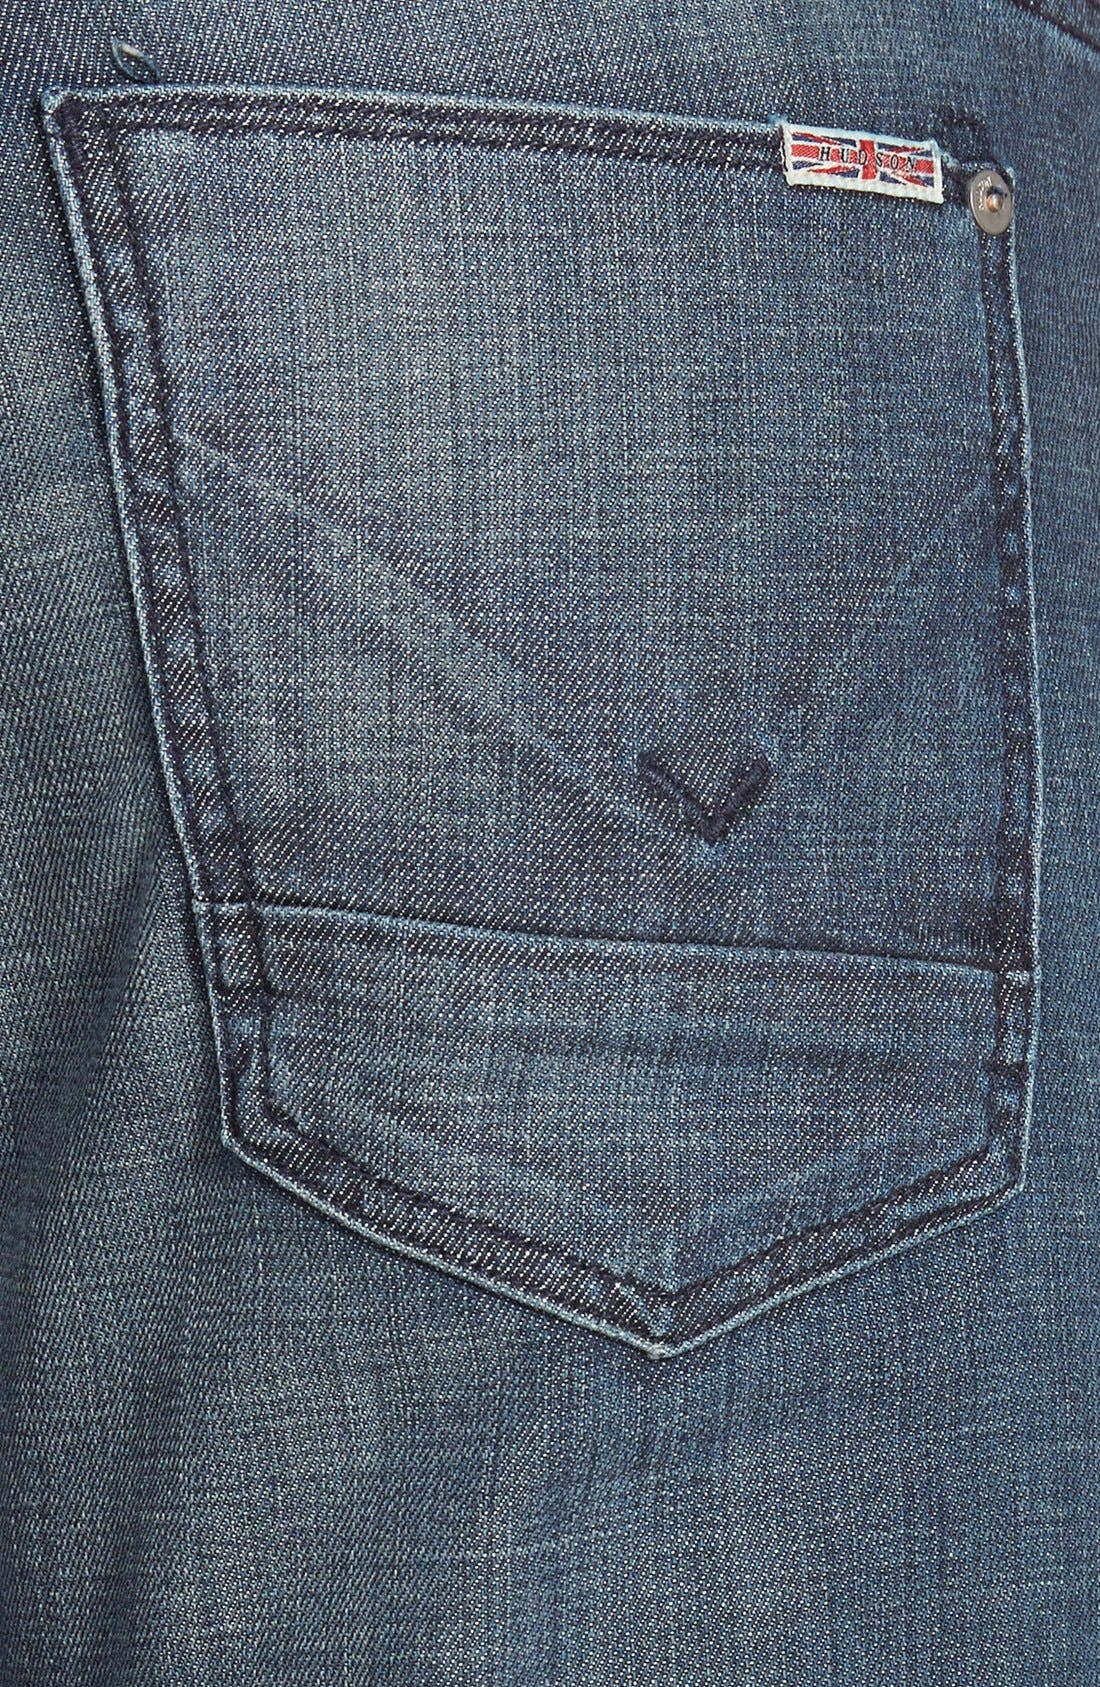 Alternate Image 4  - Hudson Jeans 'Byron' Slim Straight Leg Jeans (Commander)